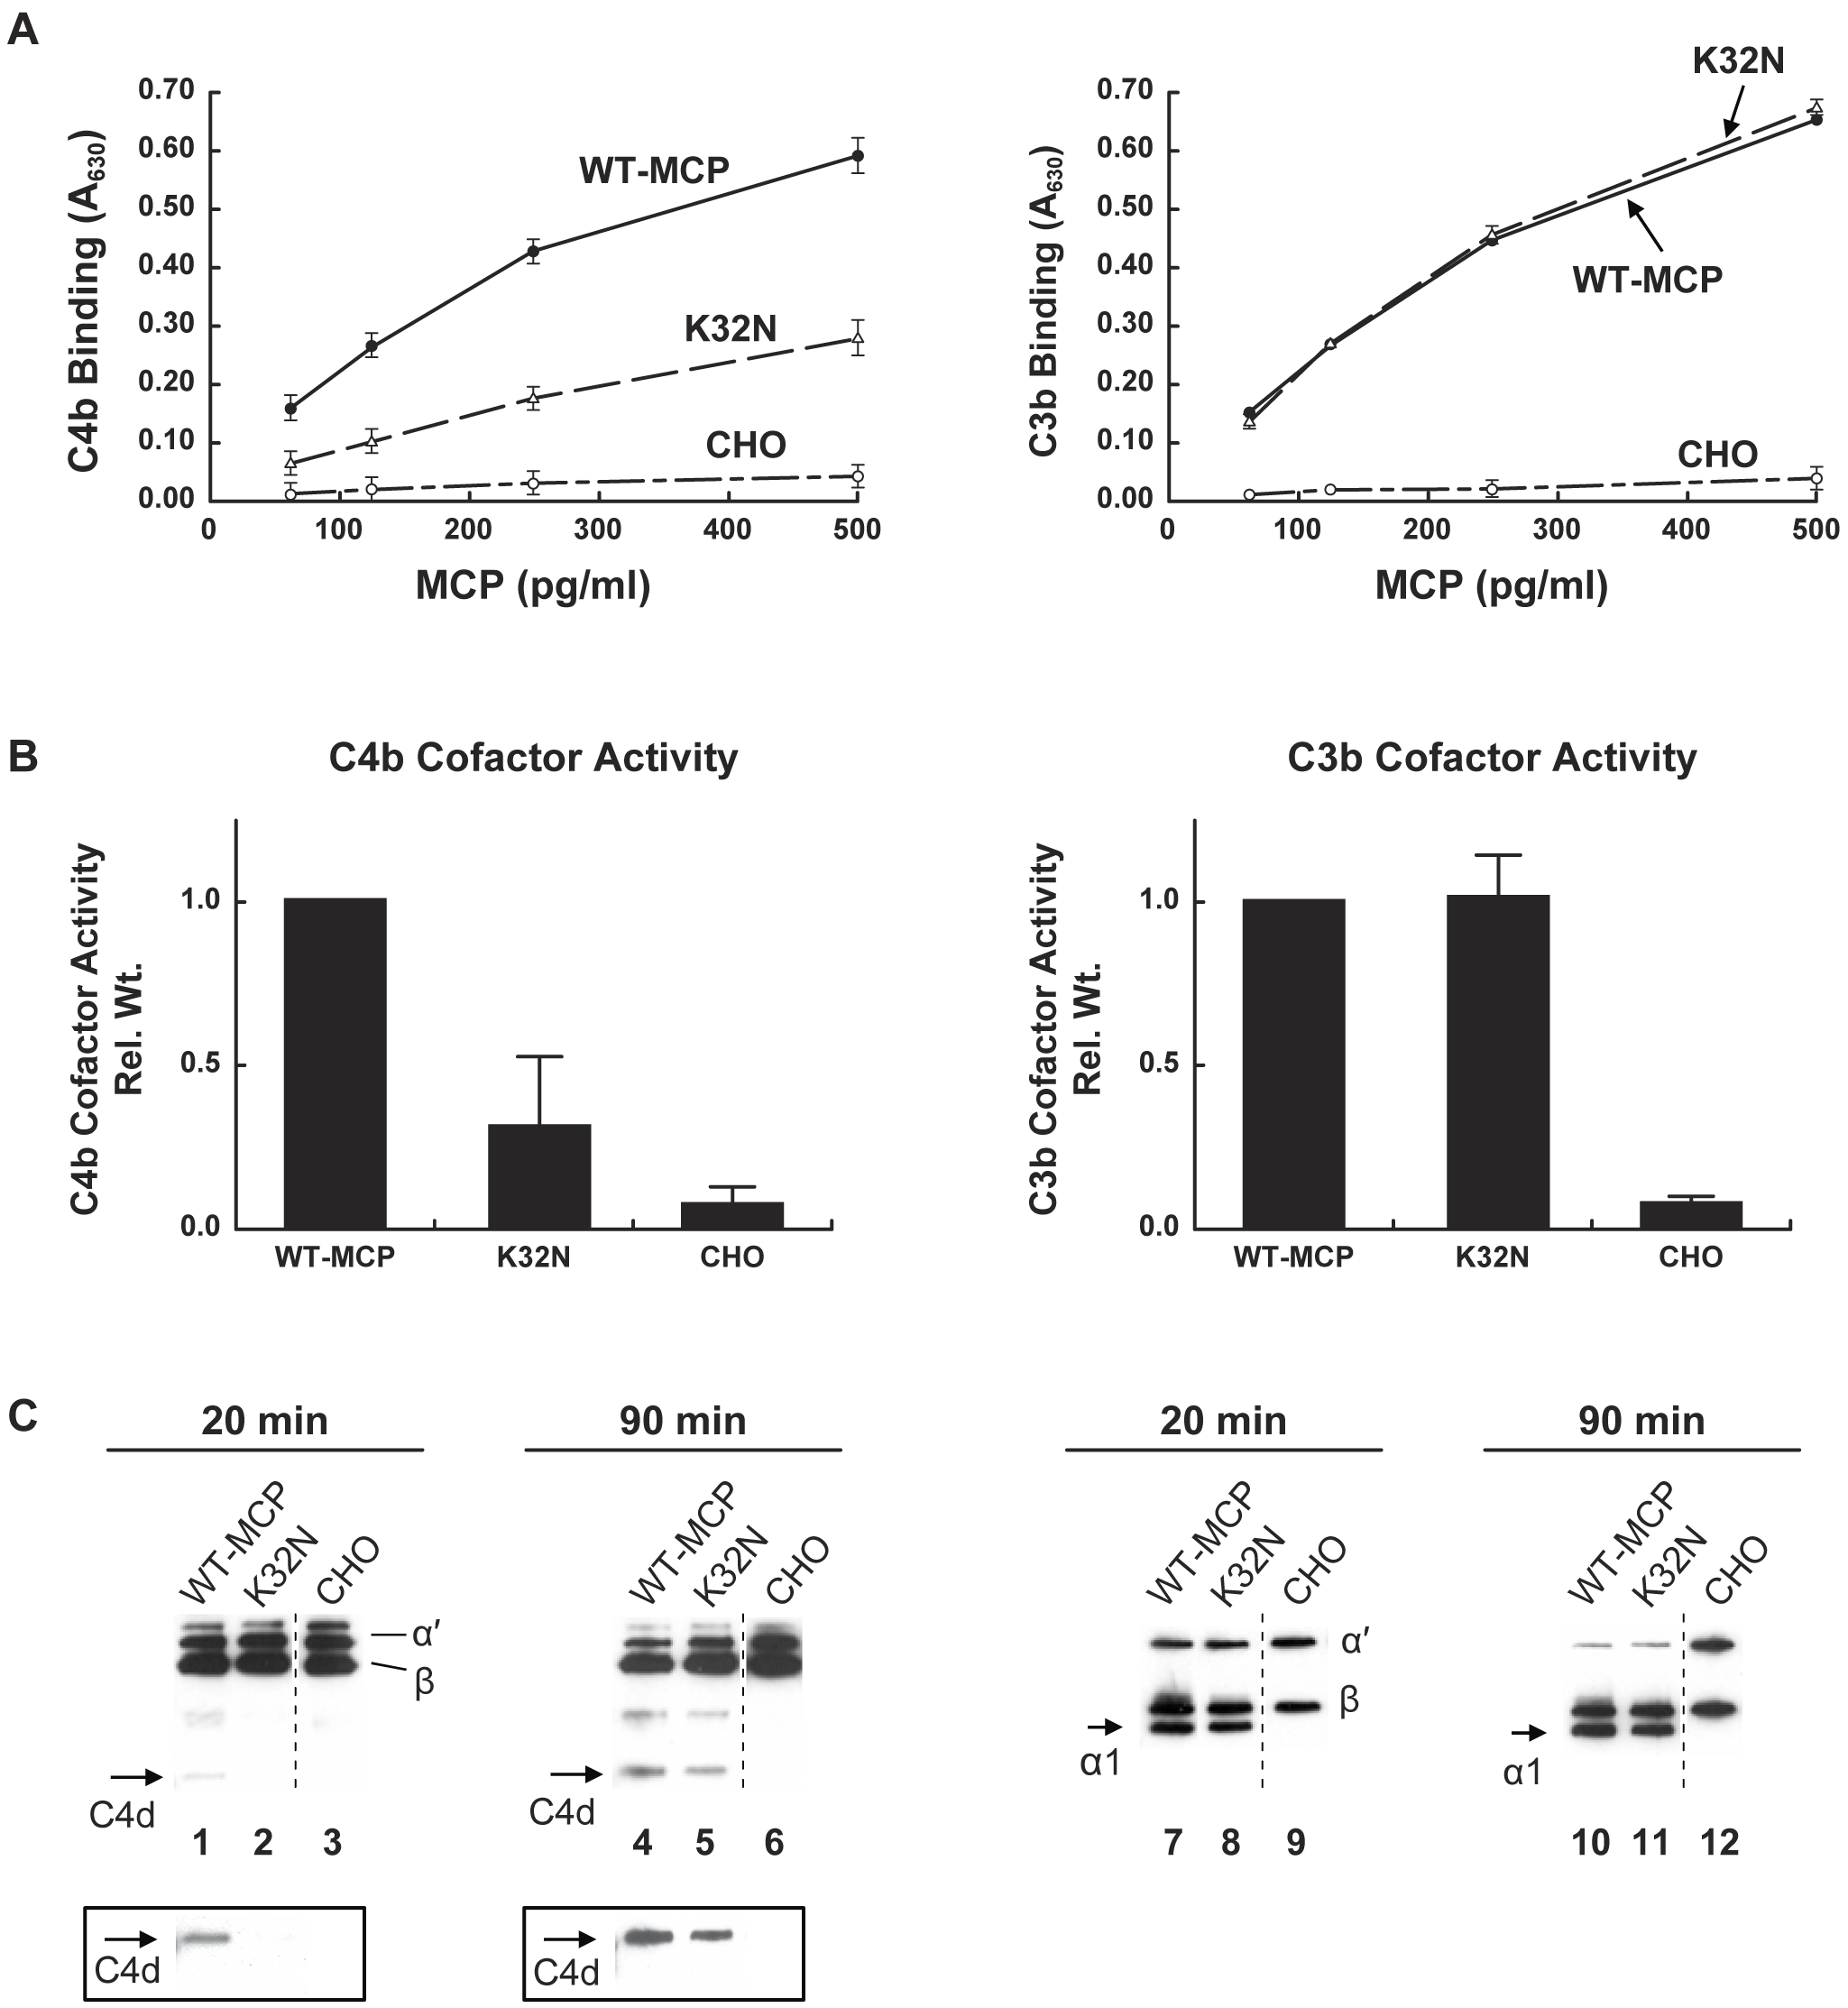 C3b and C4b binding and cofactor activity of K32N compared to wild type MCP.